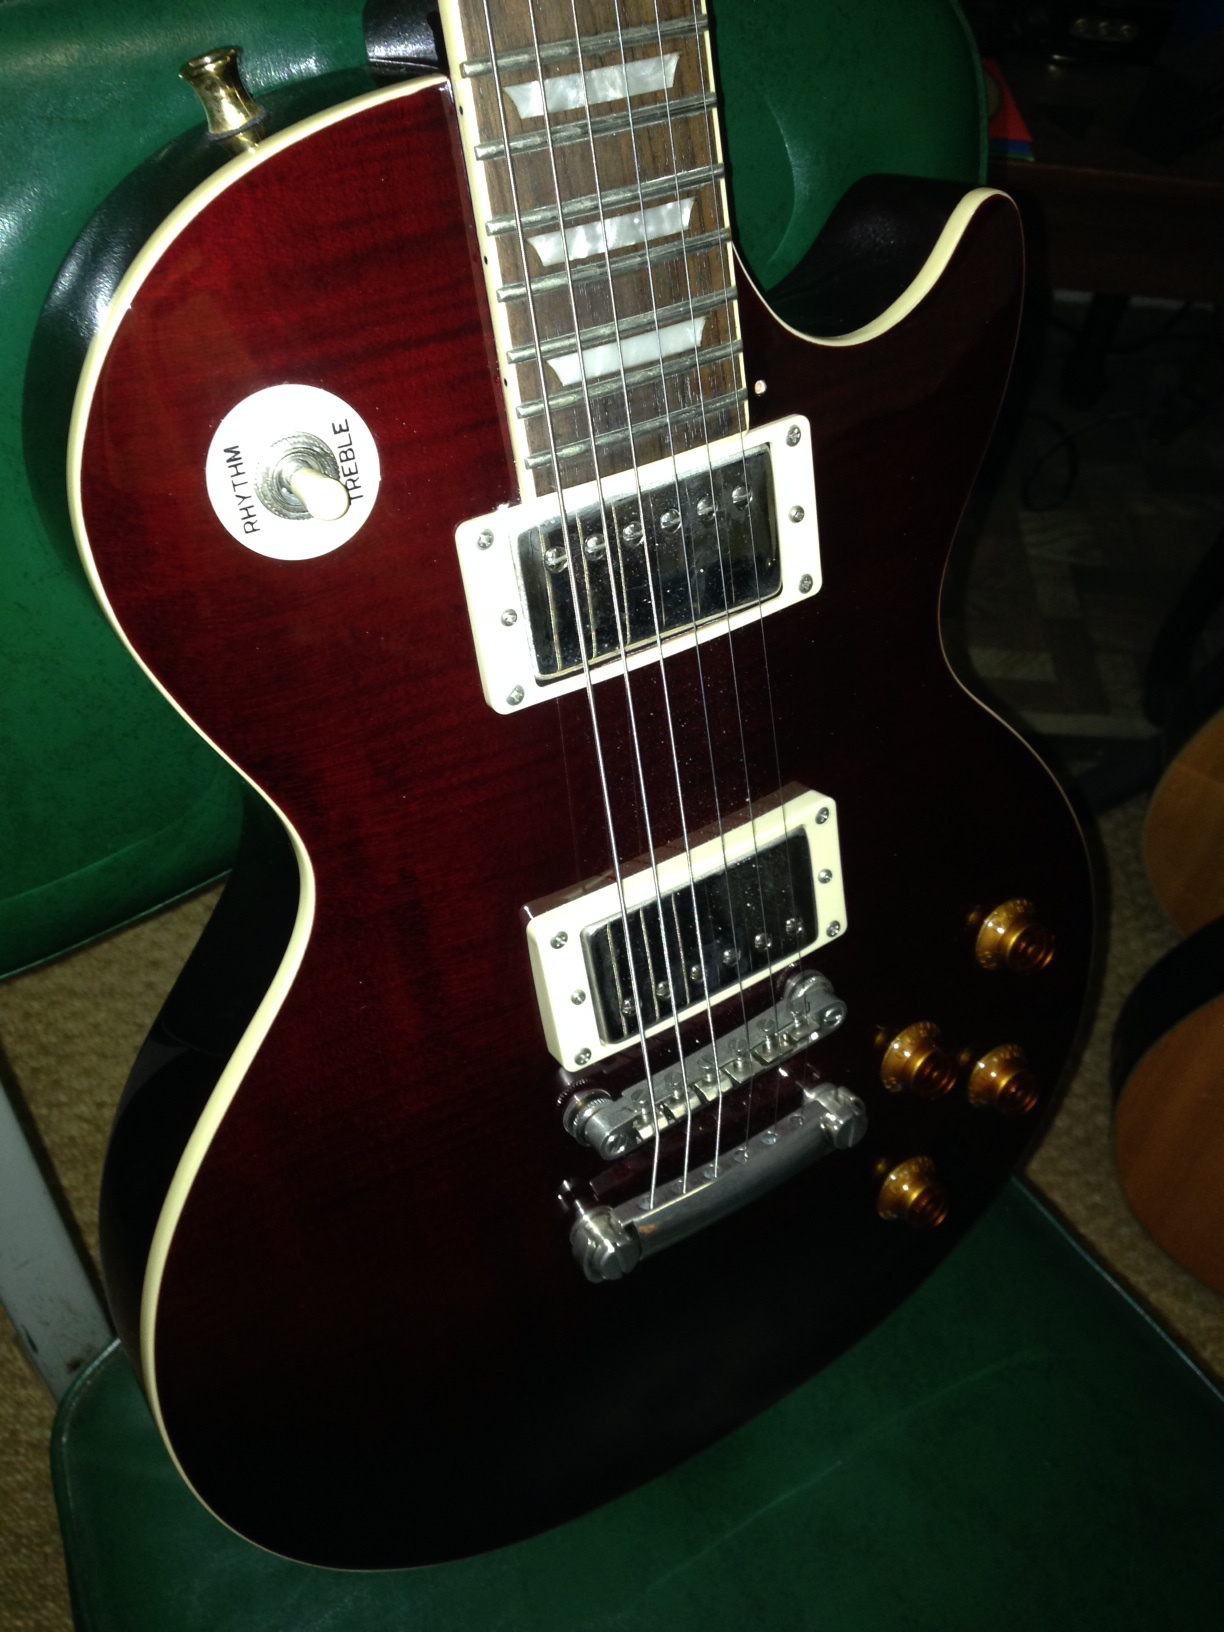 hight resolution of epiphone les paul junior bolt neck electric guitar this could use some detailed cleaning but